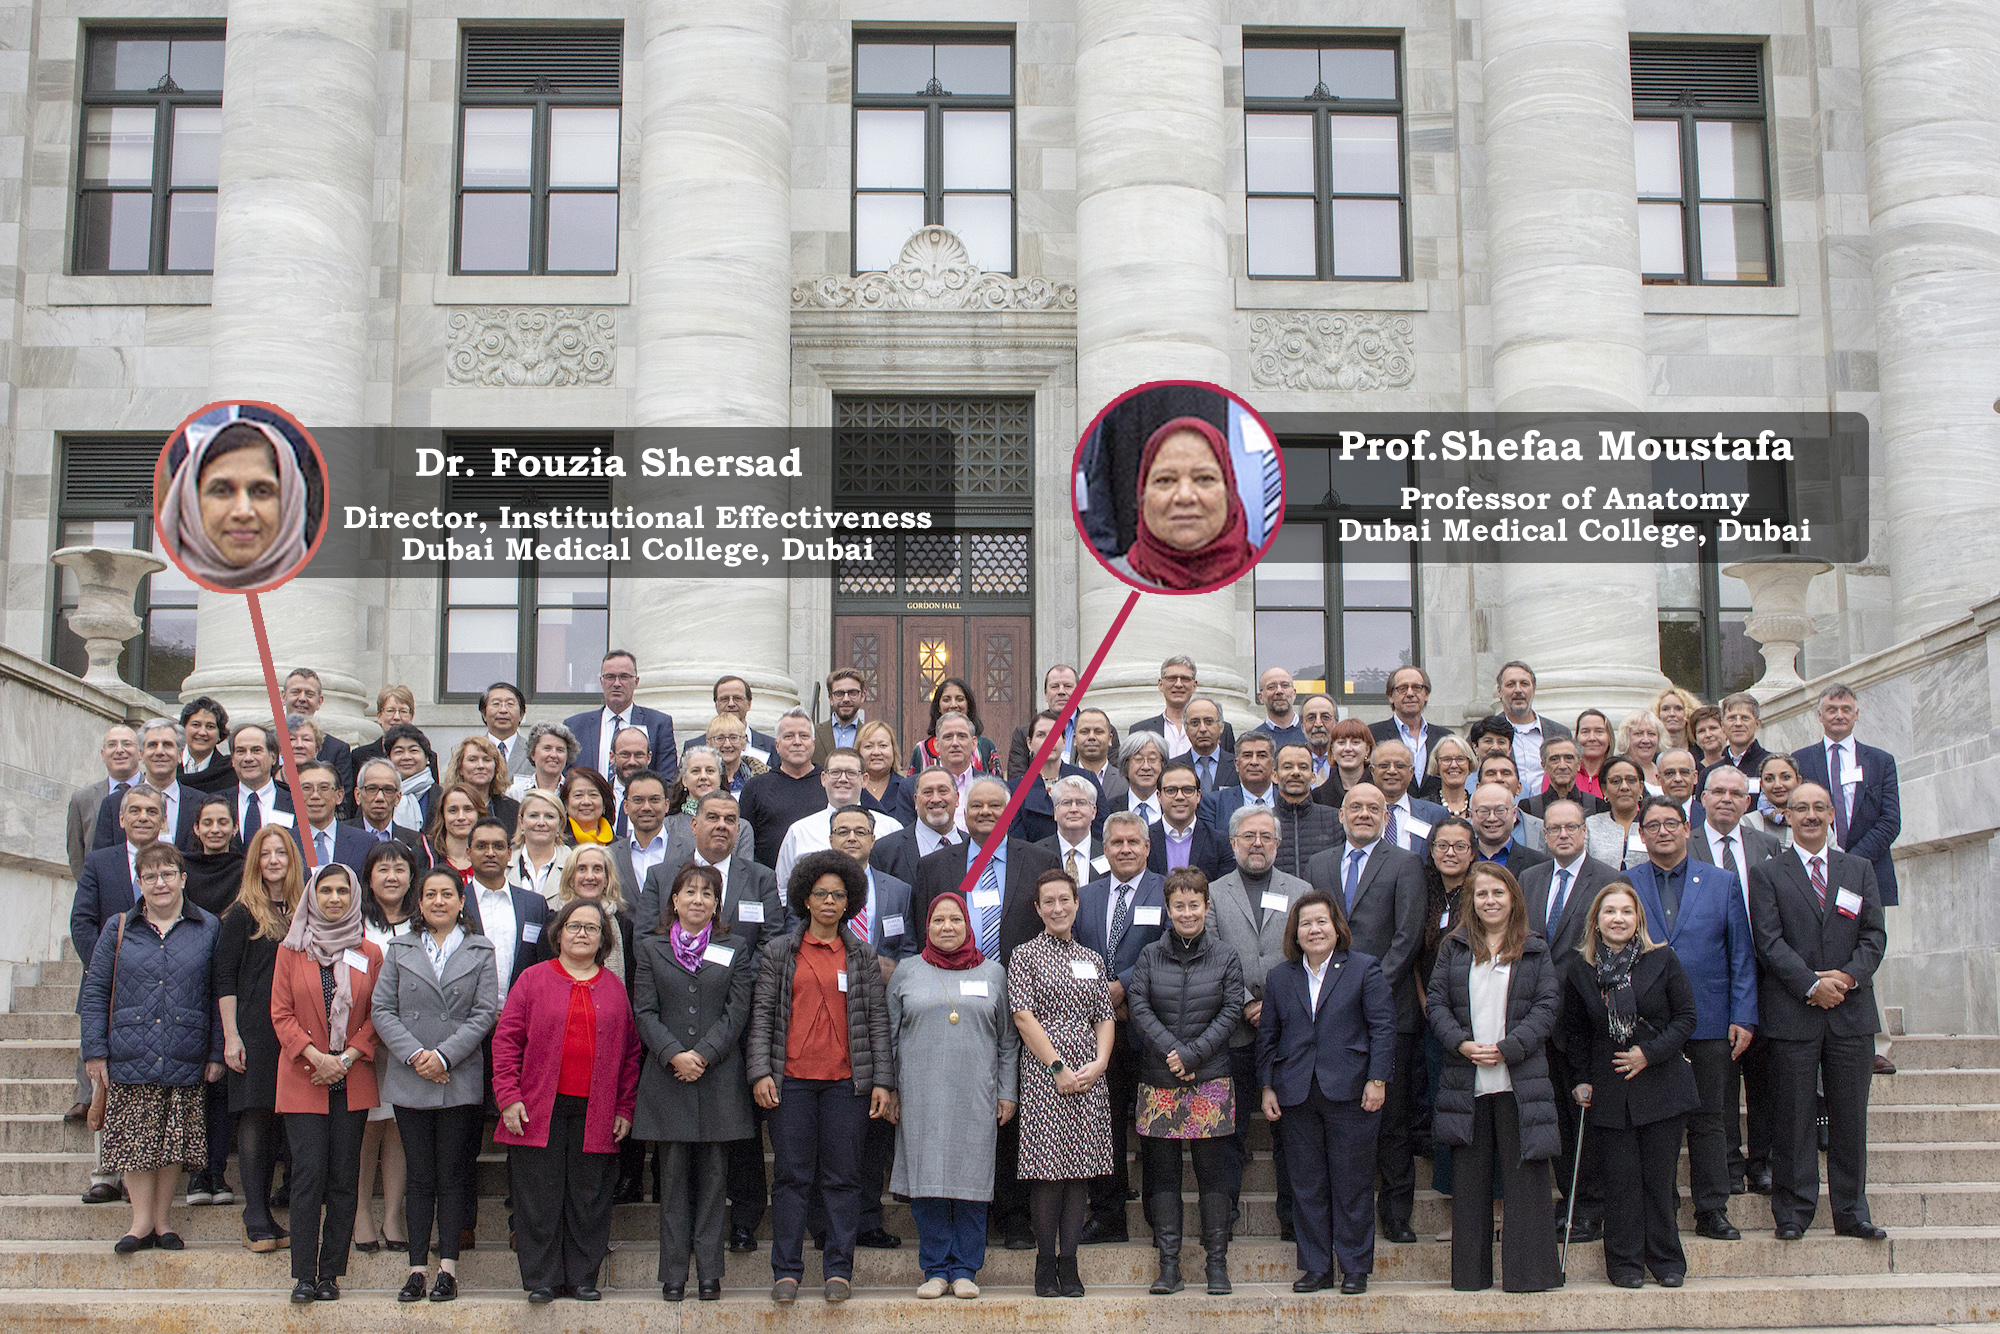 DMC Participates In Harvard Medical School Symposium For Leaders In Medical Education